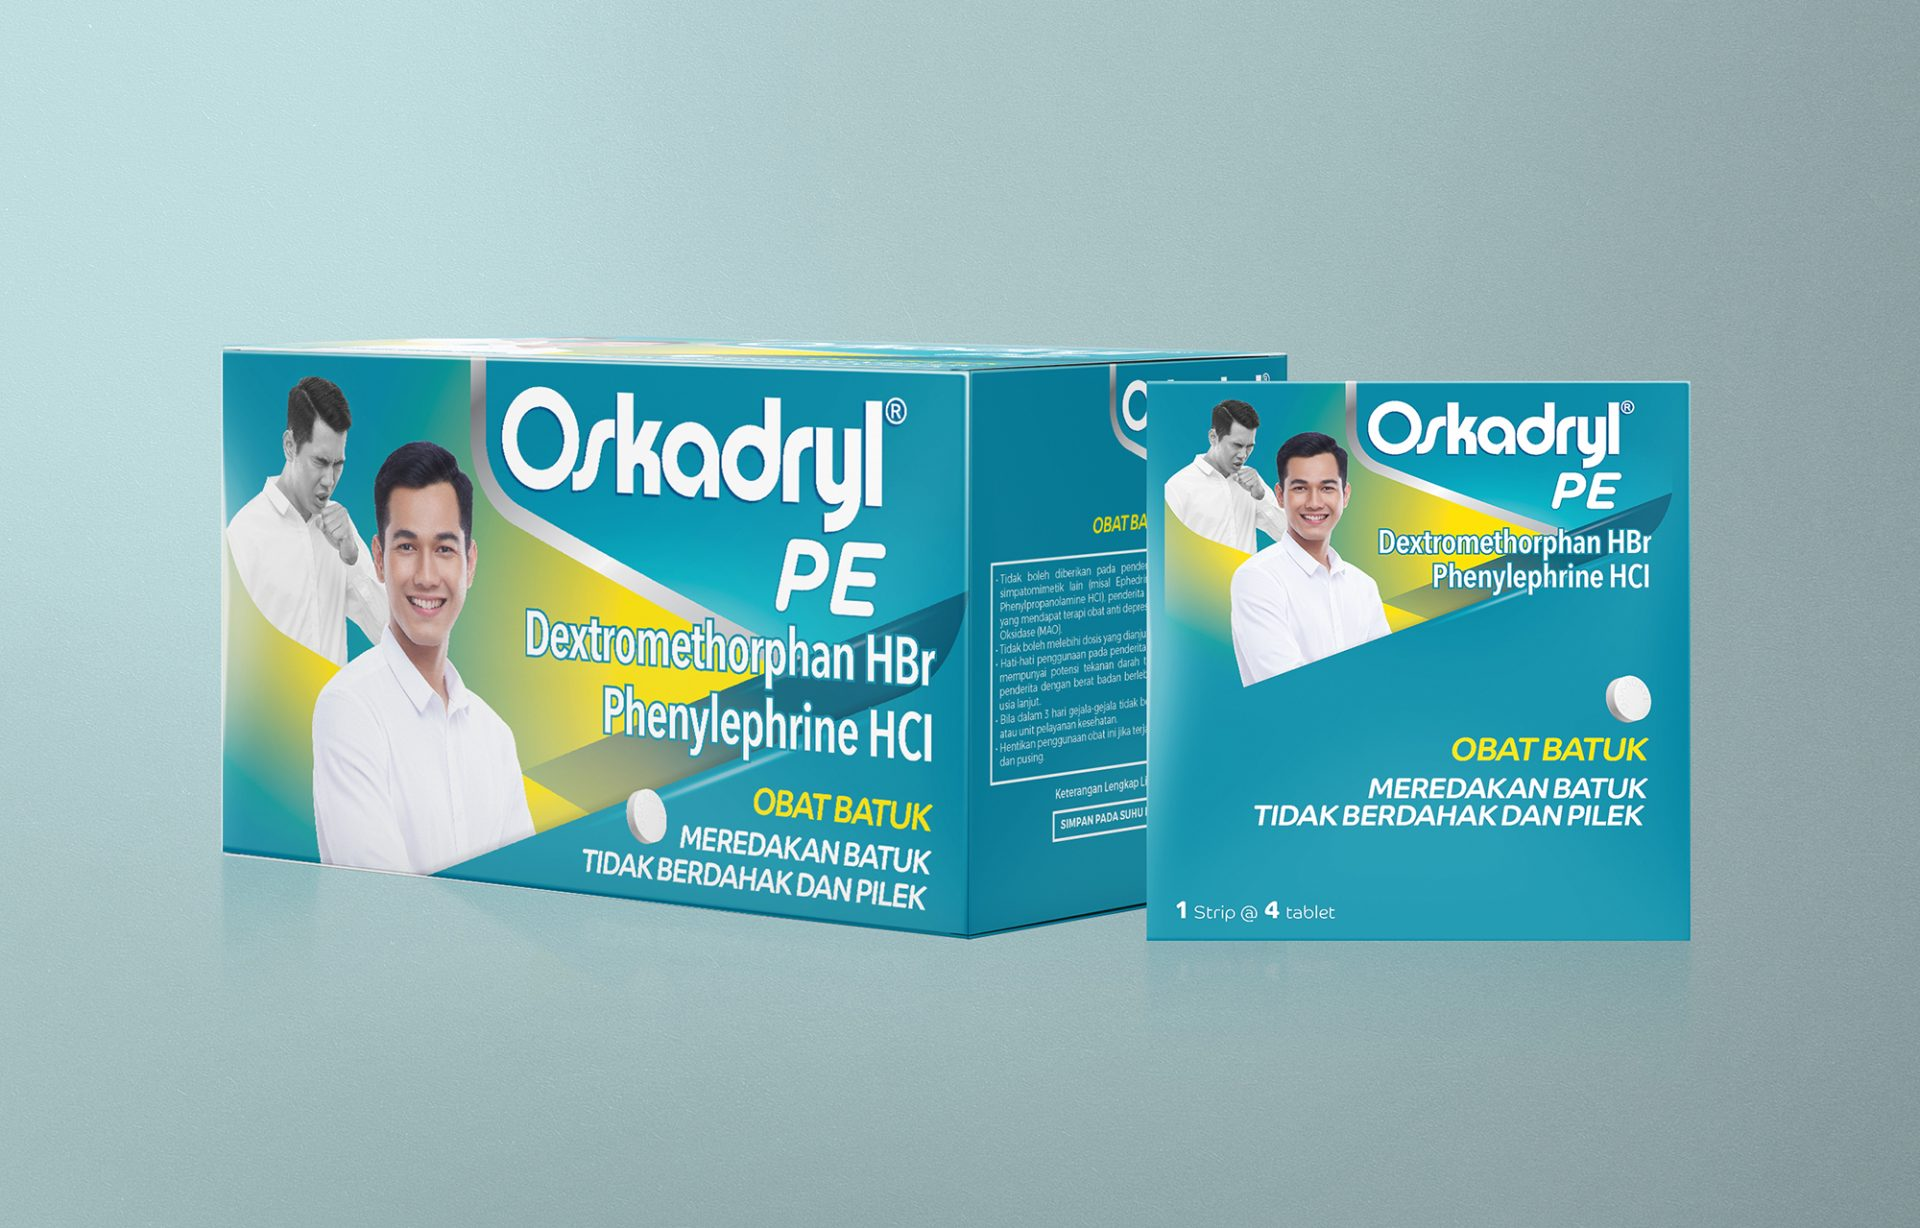 Oskadryl Packaging Rejuvenation